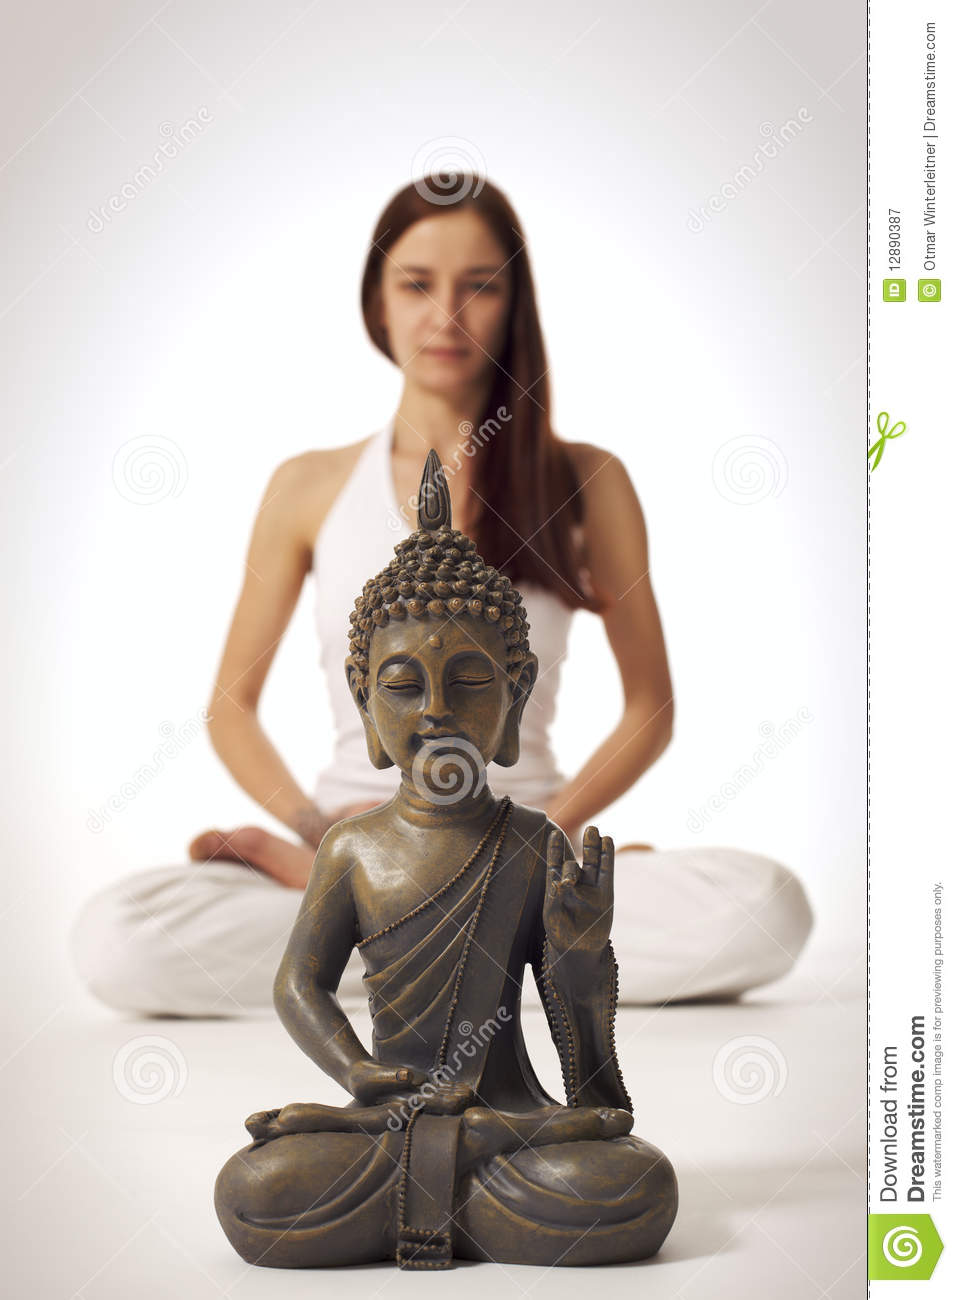 buddhist single women in tuttle Browse online buddhist personals for a chance of finding a girl that has the same spiritual and religious beliefs come online and find your perfect woman, buddhist personals.